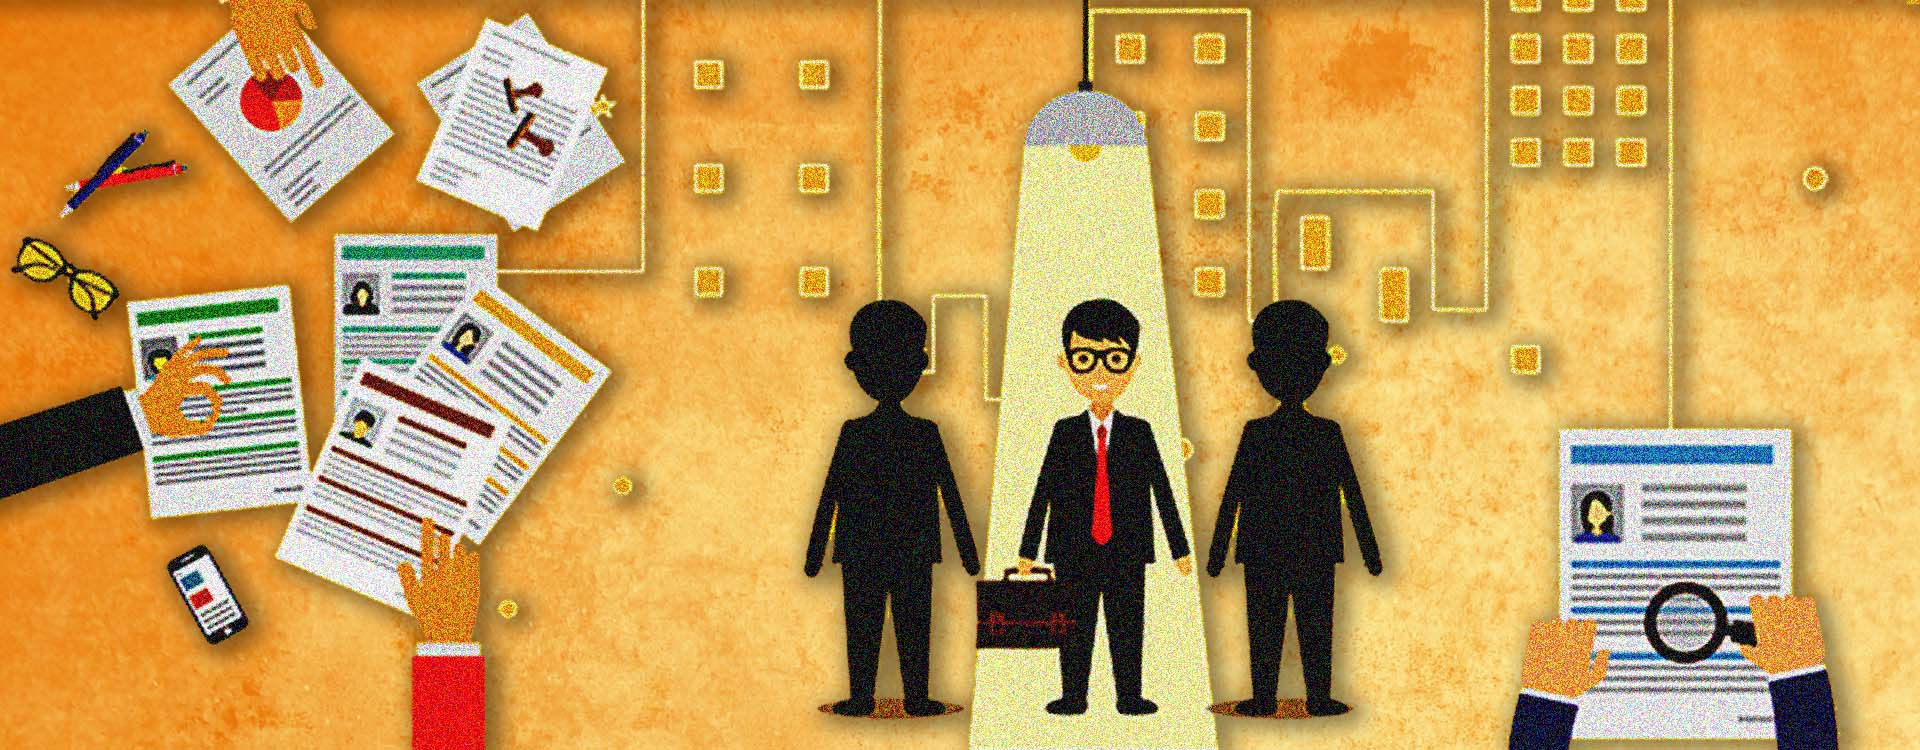 How to Build a Recruitment Process to Hire Top Talent for Small Businesses?